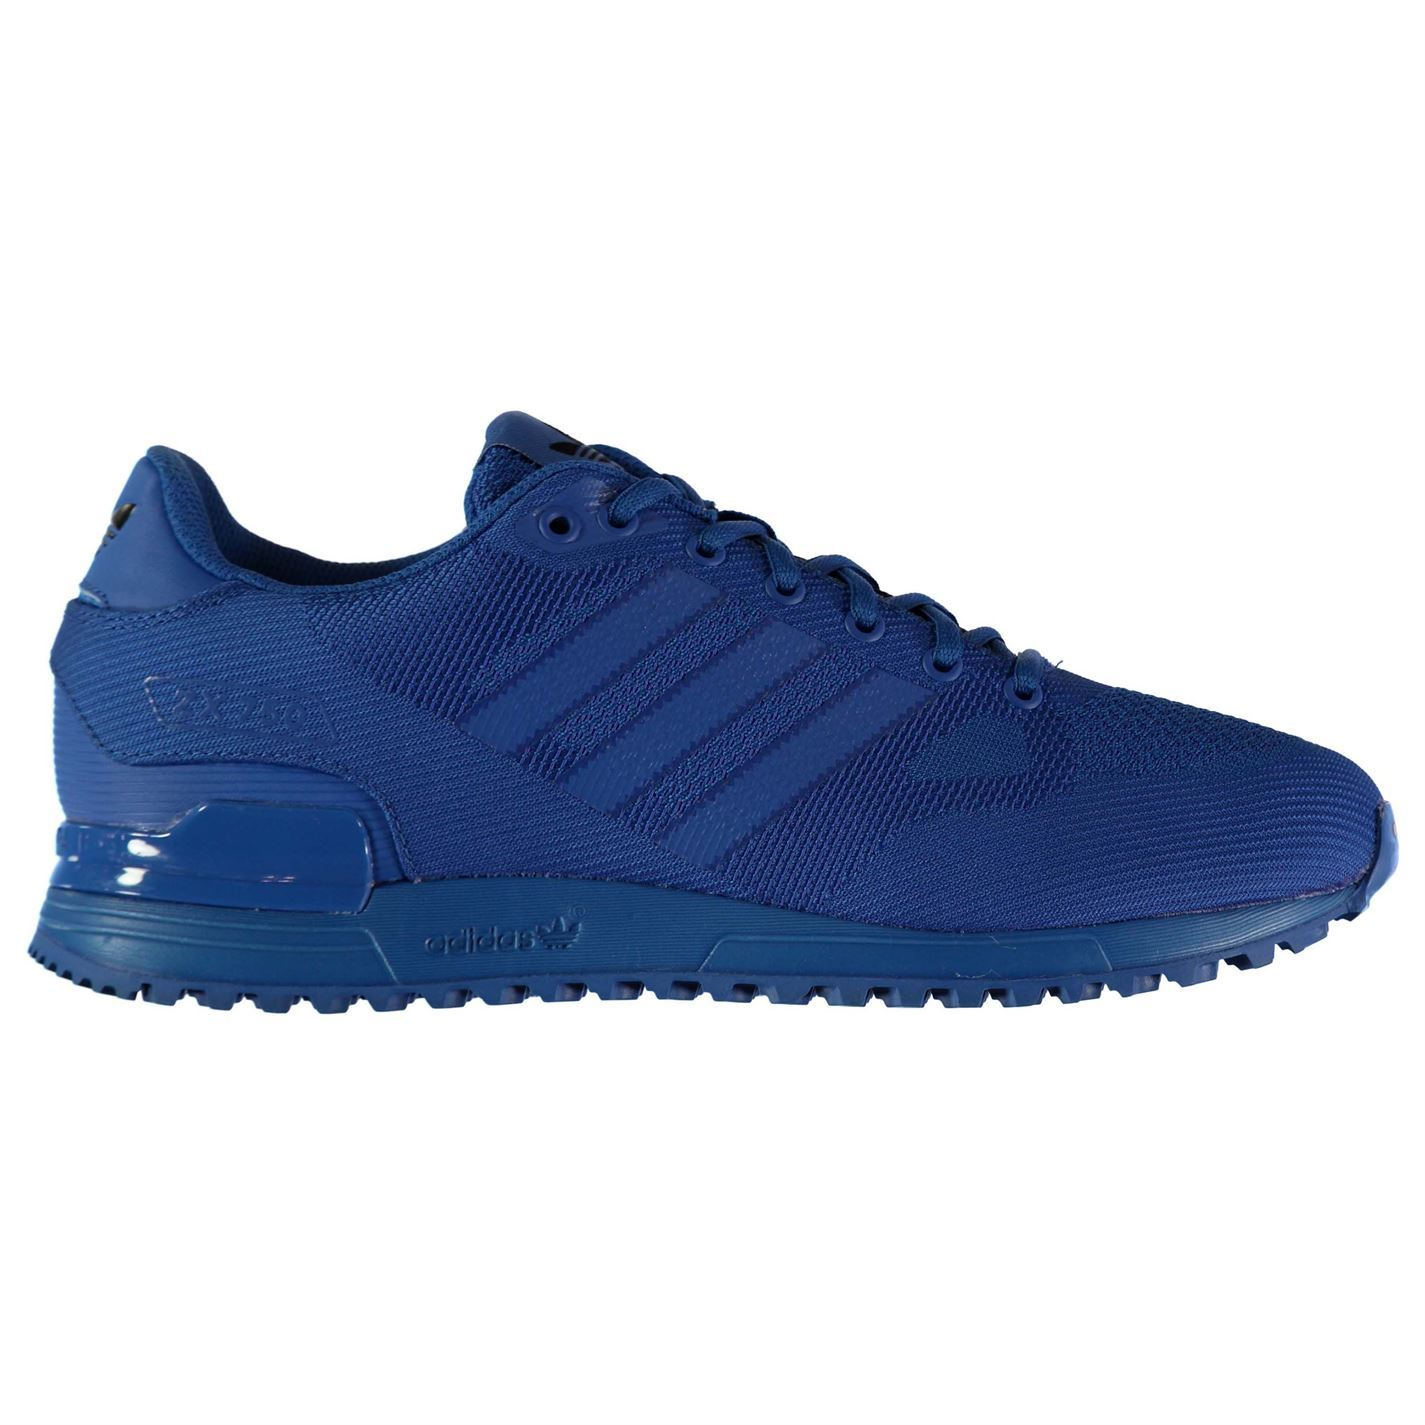 adidas zx 750 weave shoes